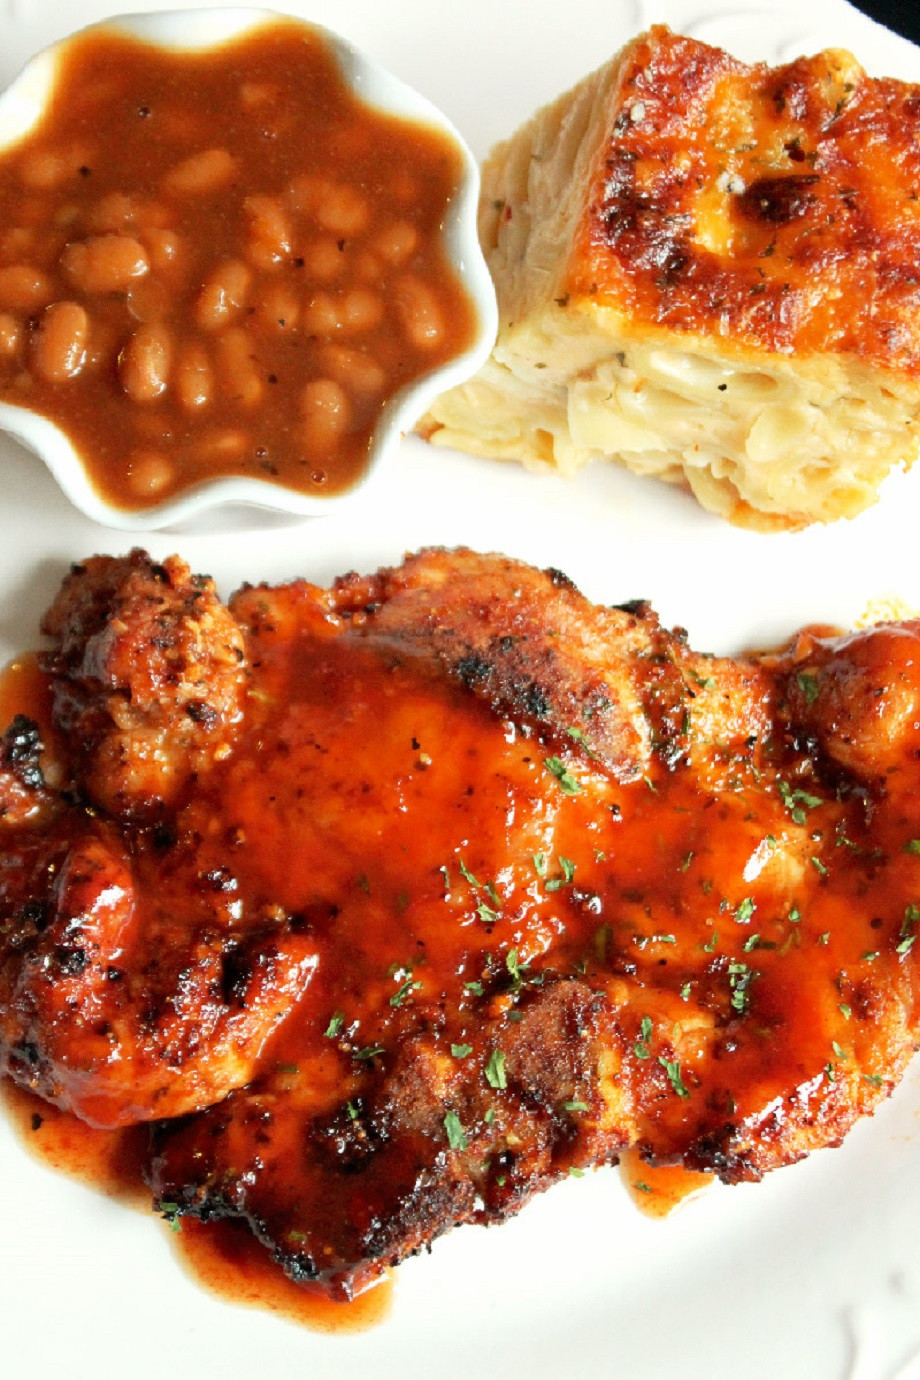 Grill Pork Chops Time  Grilled Pork Chops Creole Contessa